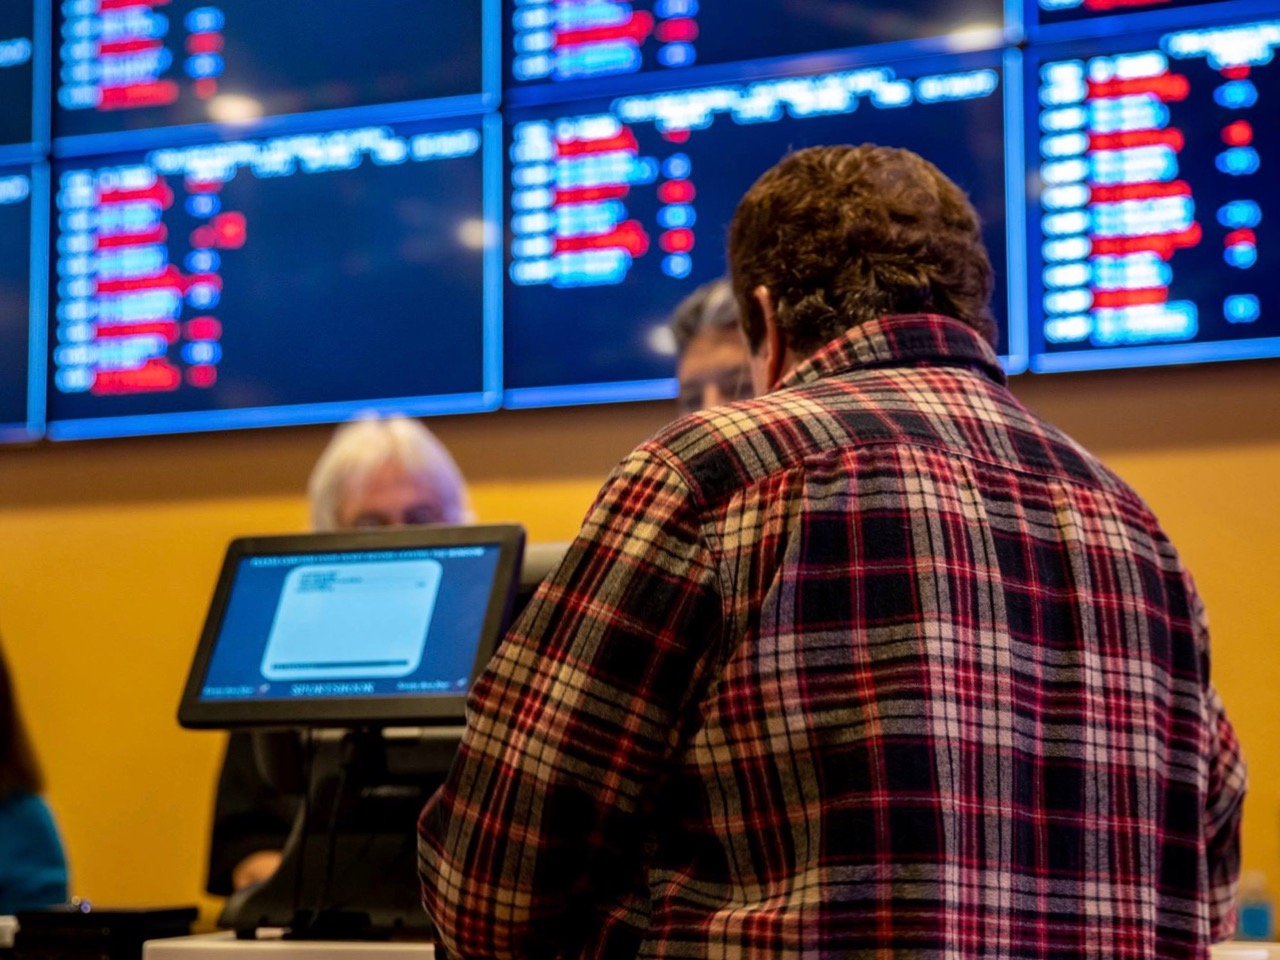 Sports betting moves slowly amid concerns from tribes in several states